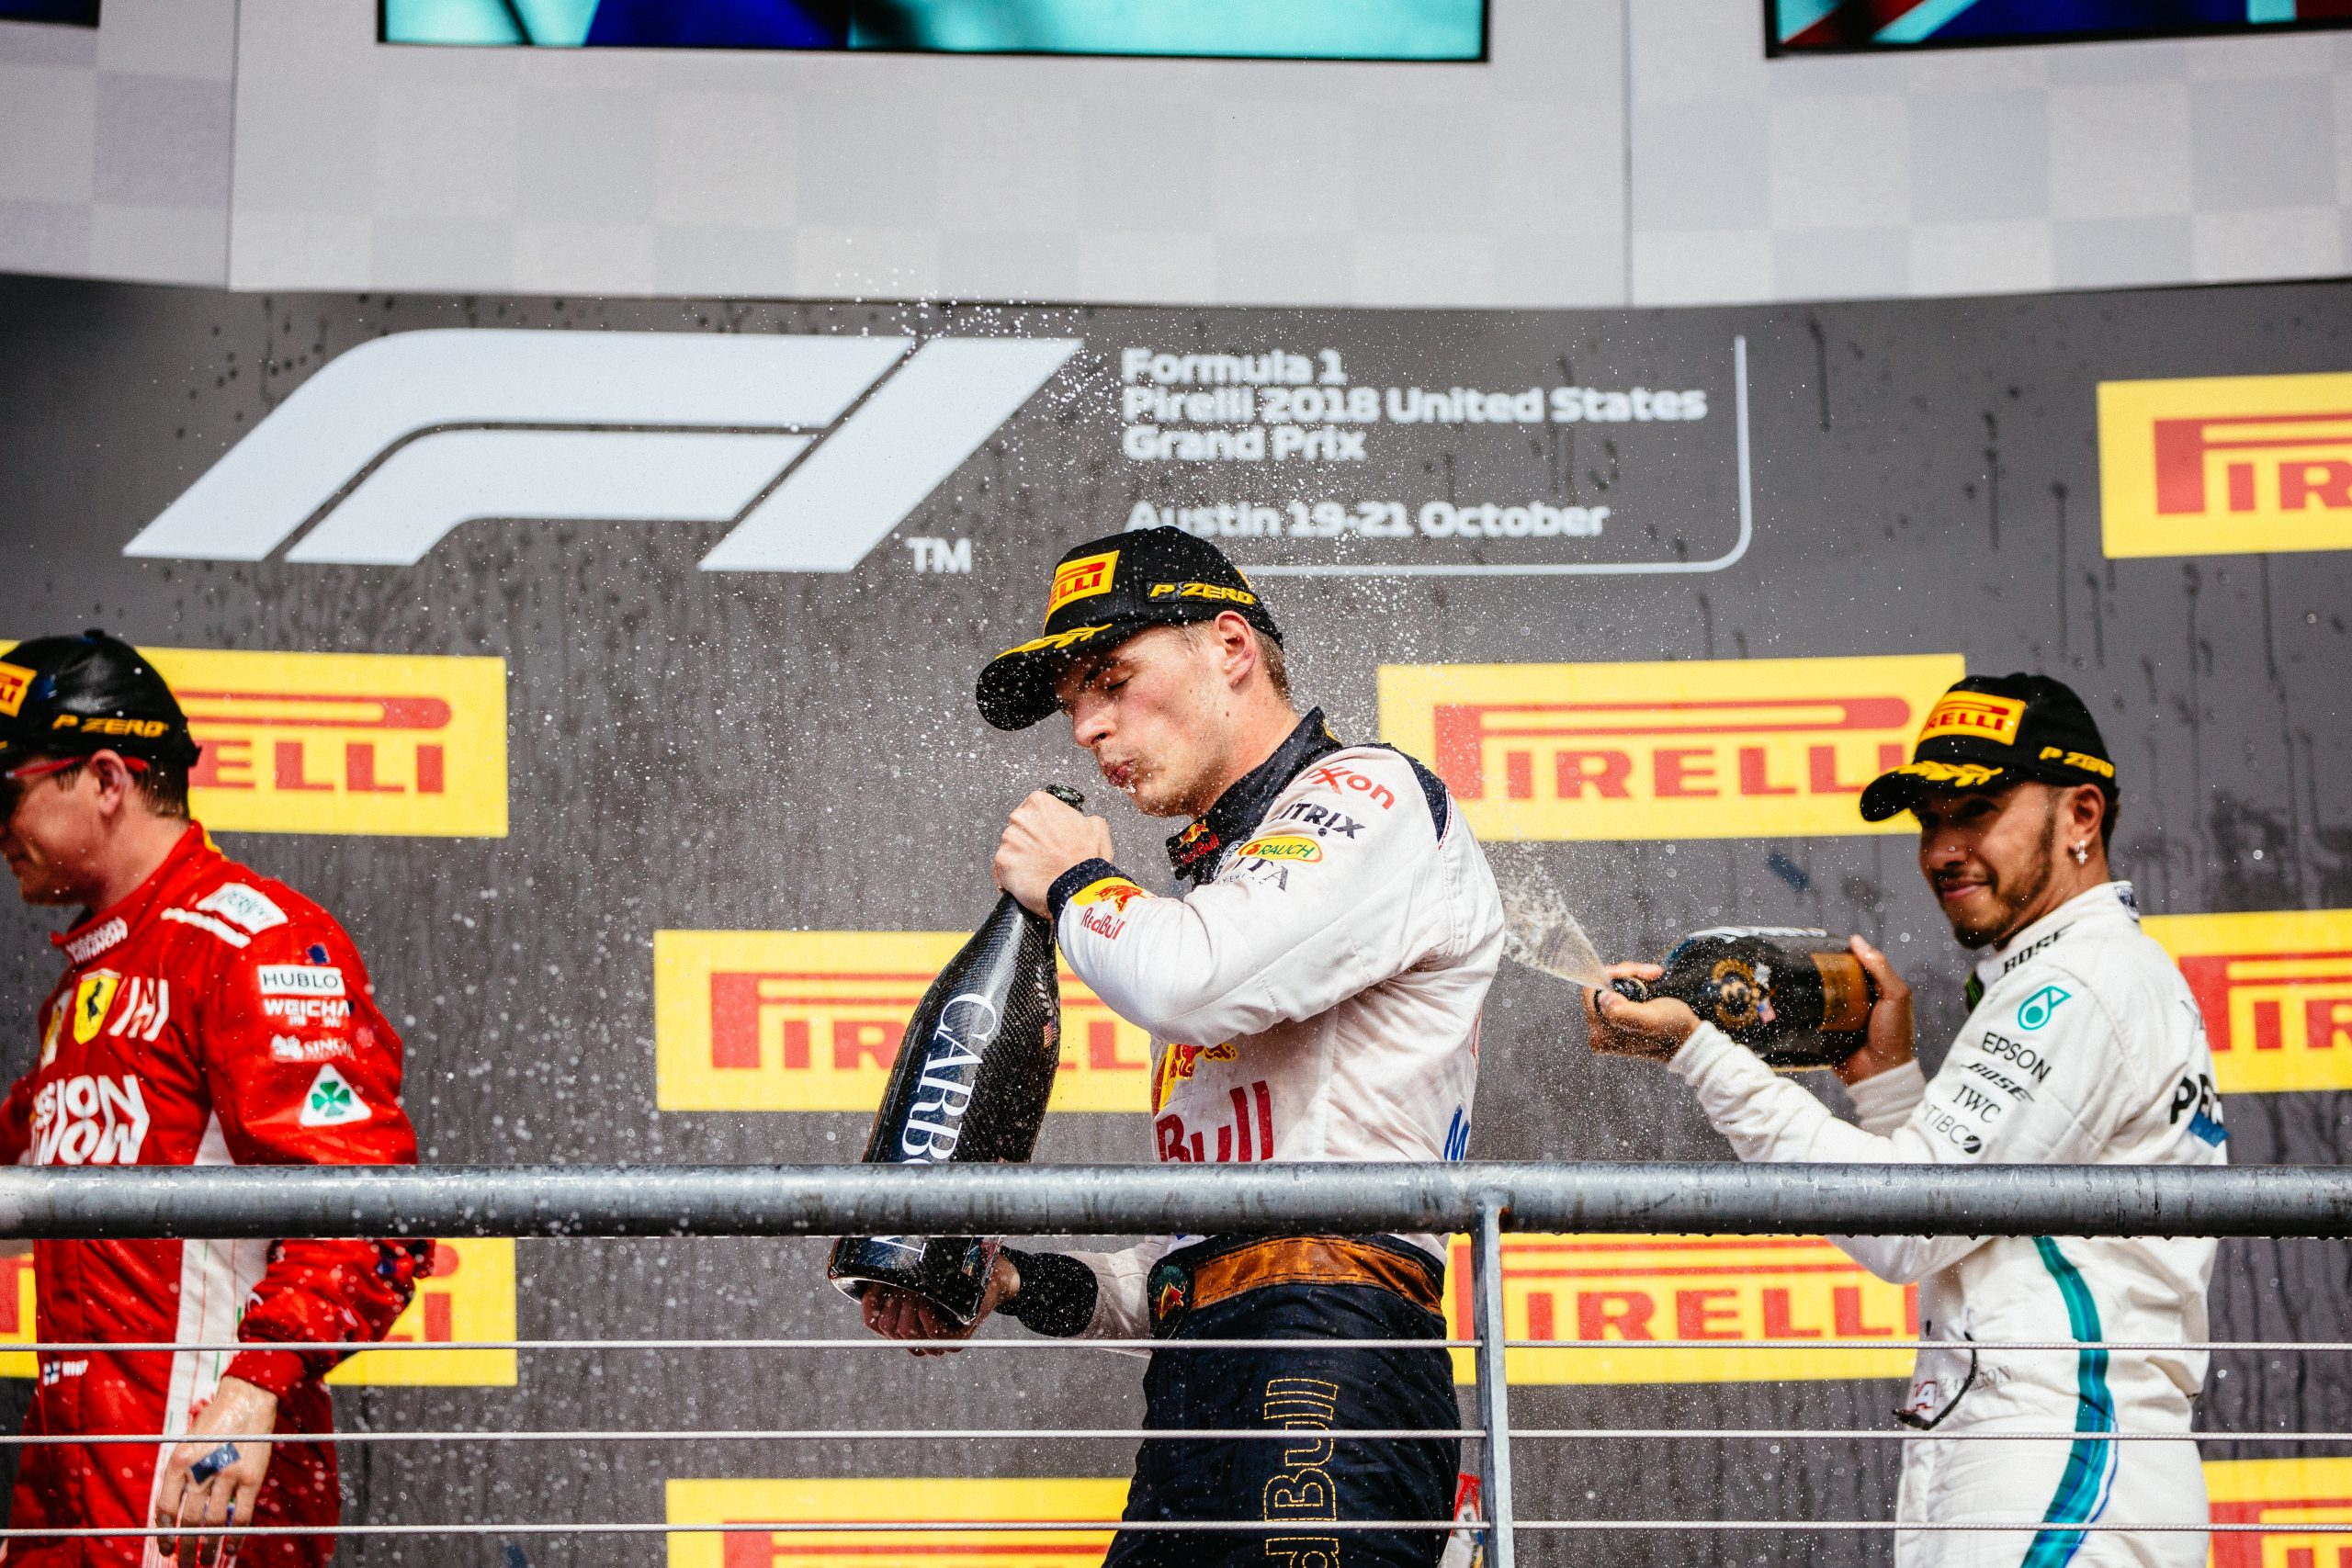 Lews Hamilton spraying Max Verstappen with champaign on the podium